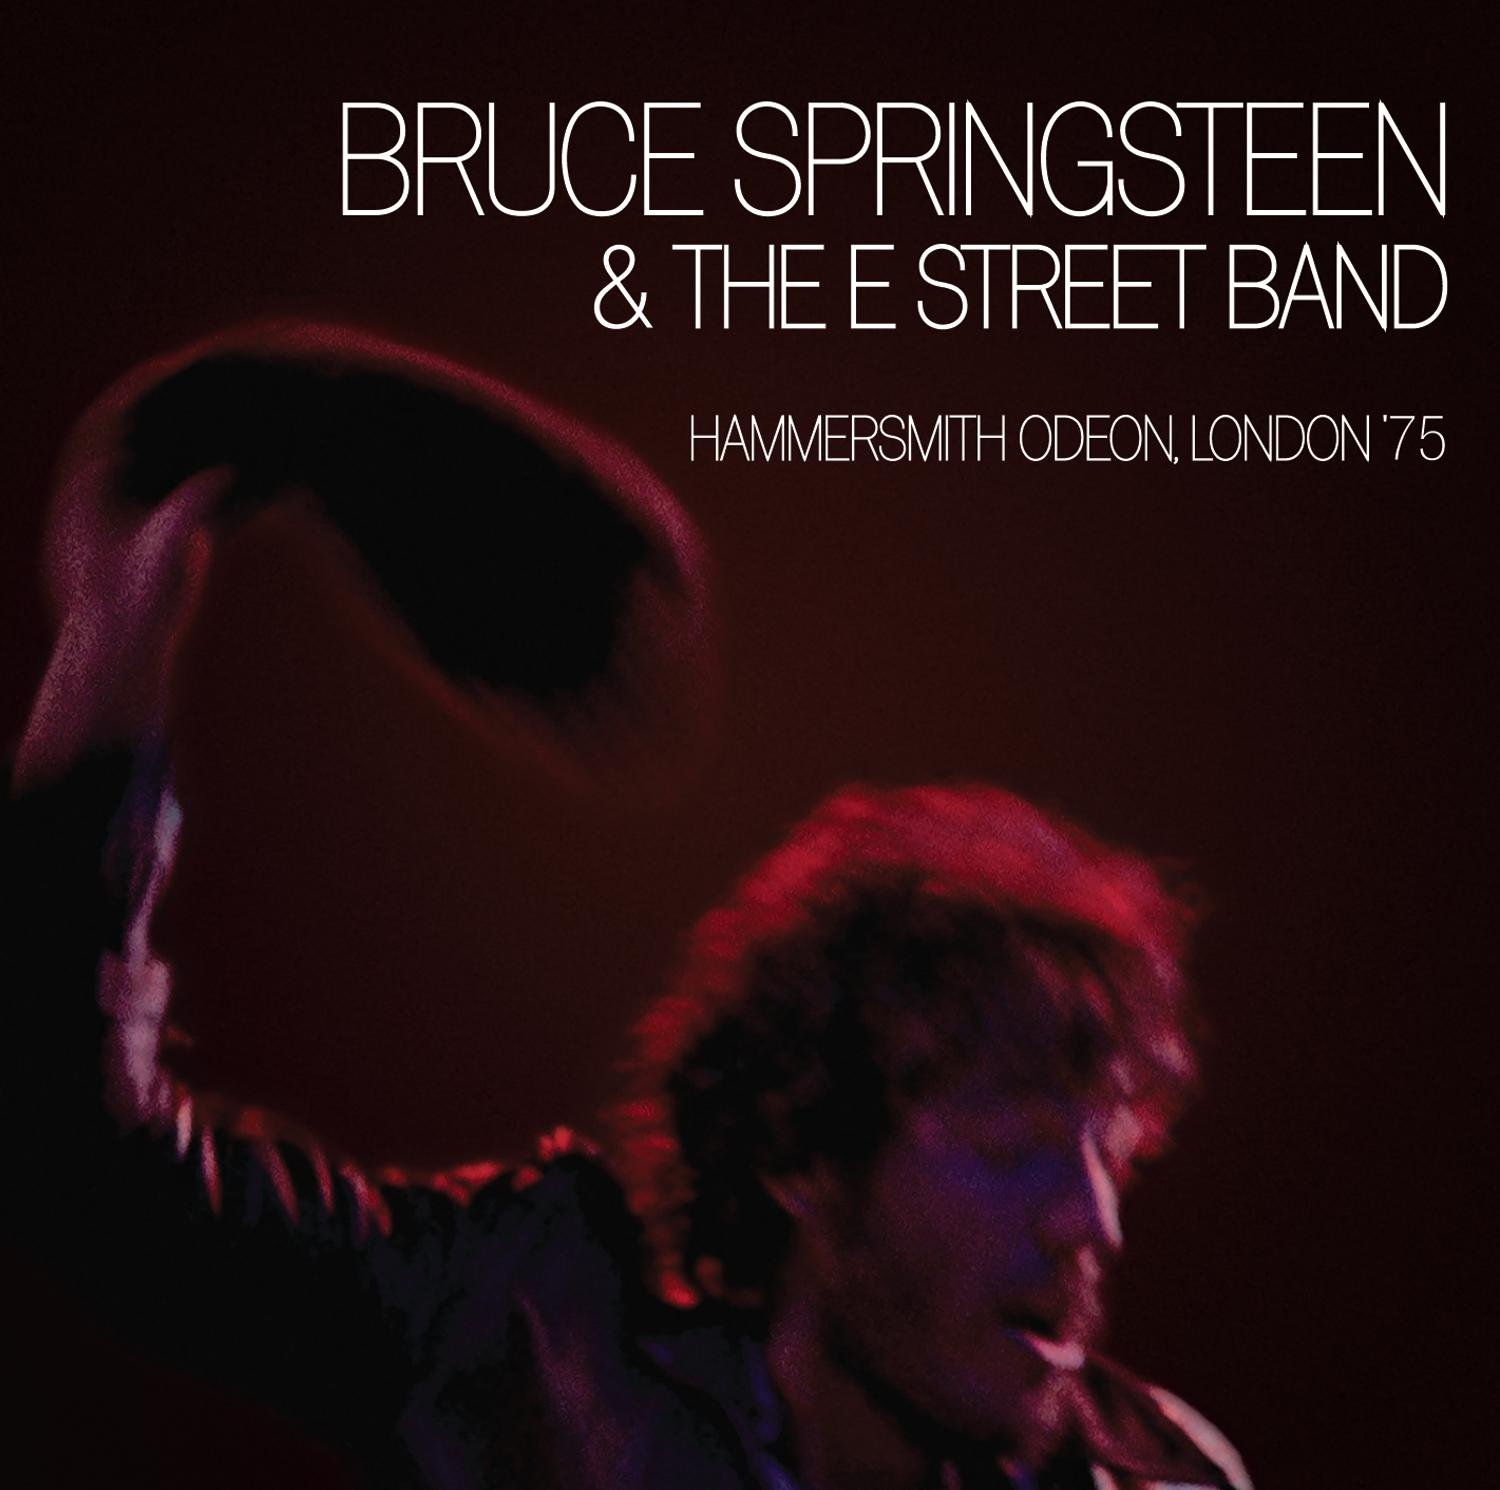 Hammersmith Odeon, London '75 (2CD) by Springsteen, Bruce